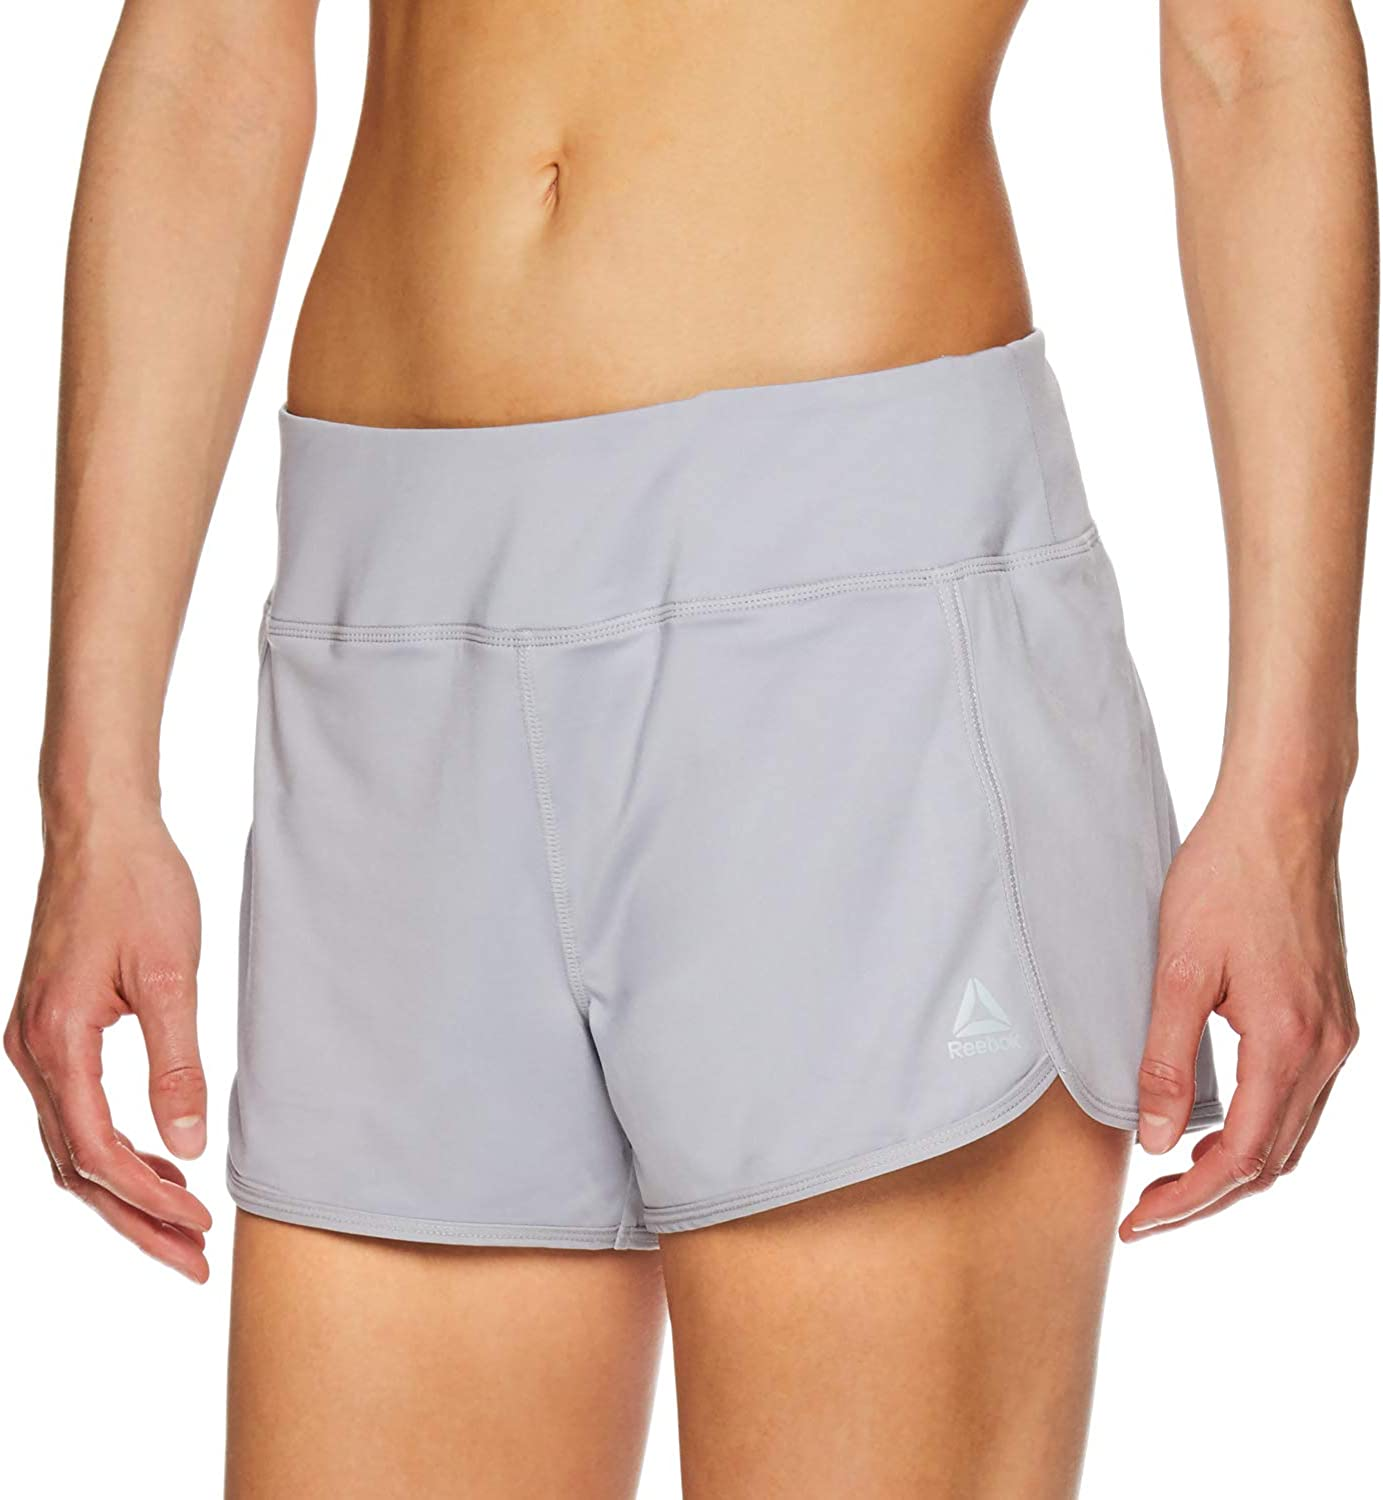 3 1//4 Inch Inseam Relaxed Fit and Mid-Rise Waist Training Shorts w// Liner Reebok Womens Running Shorts